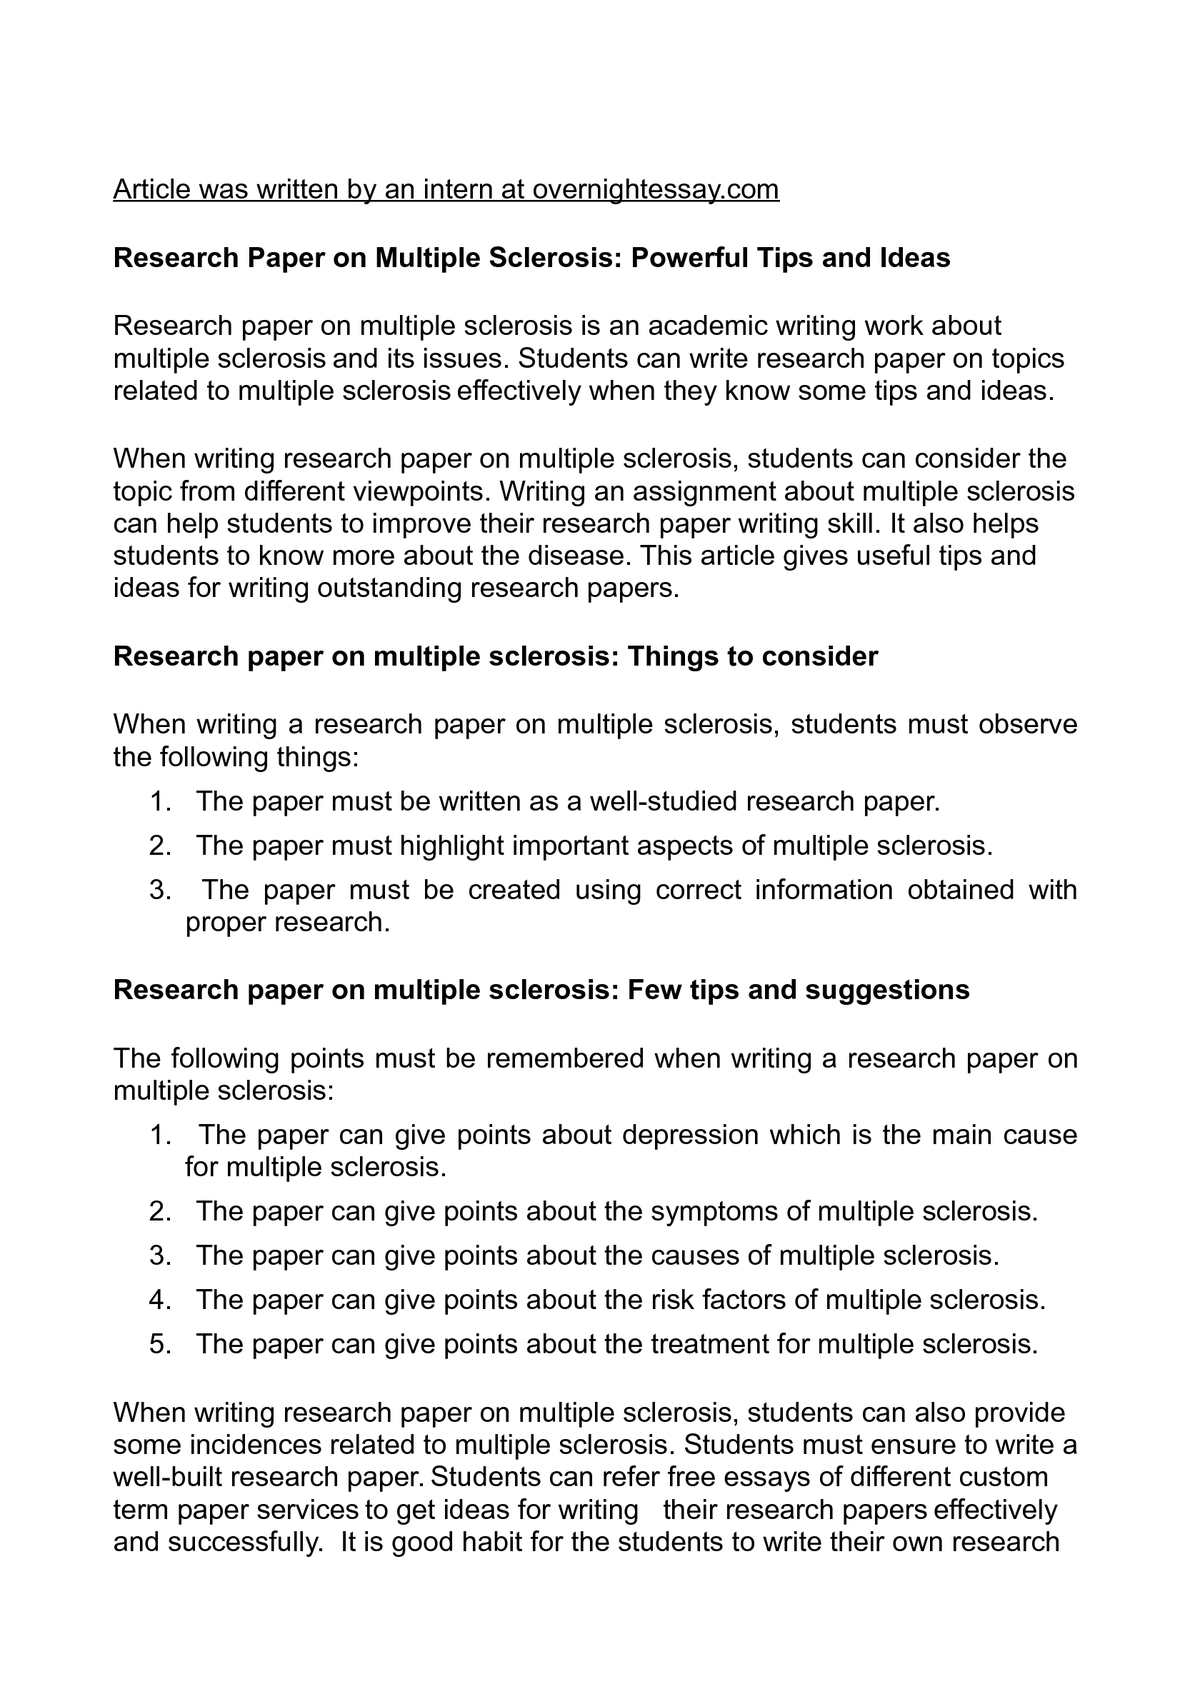 004 Research Paper Ideas To Write On Dreaded A Good Full